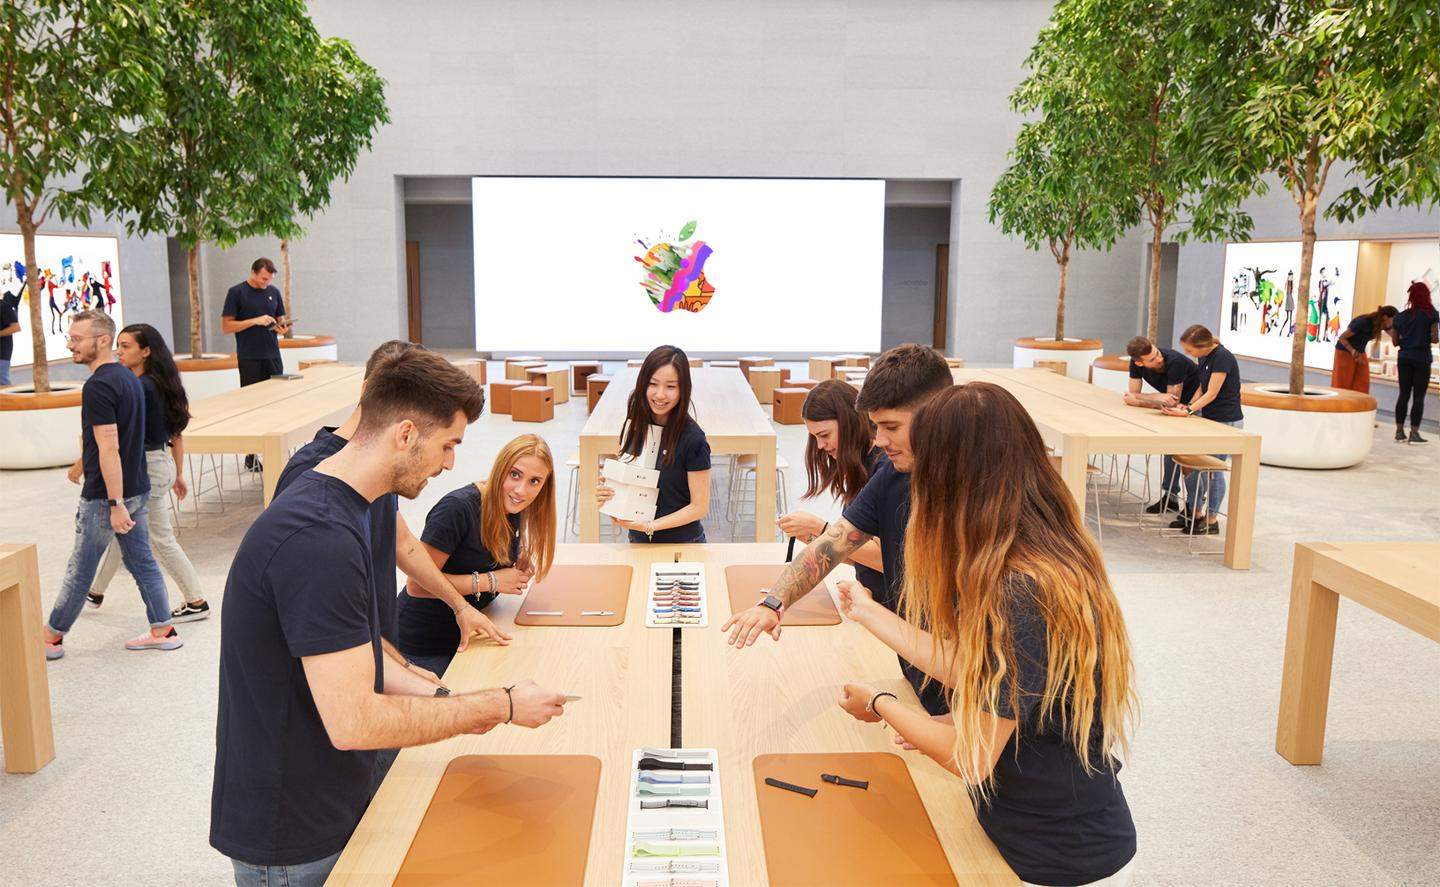 Apple Piazza Liberty storeis located in Milan's Piazza del Liberty